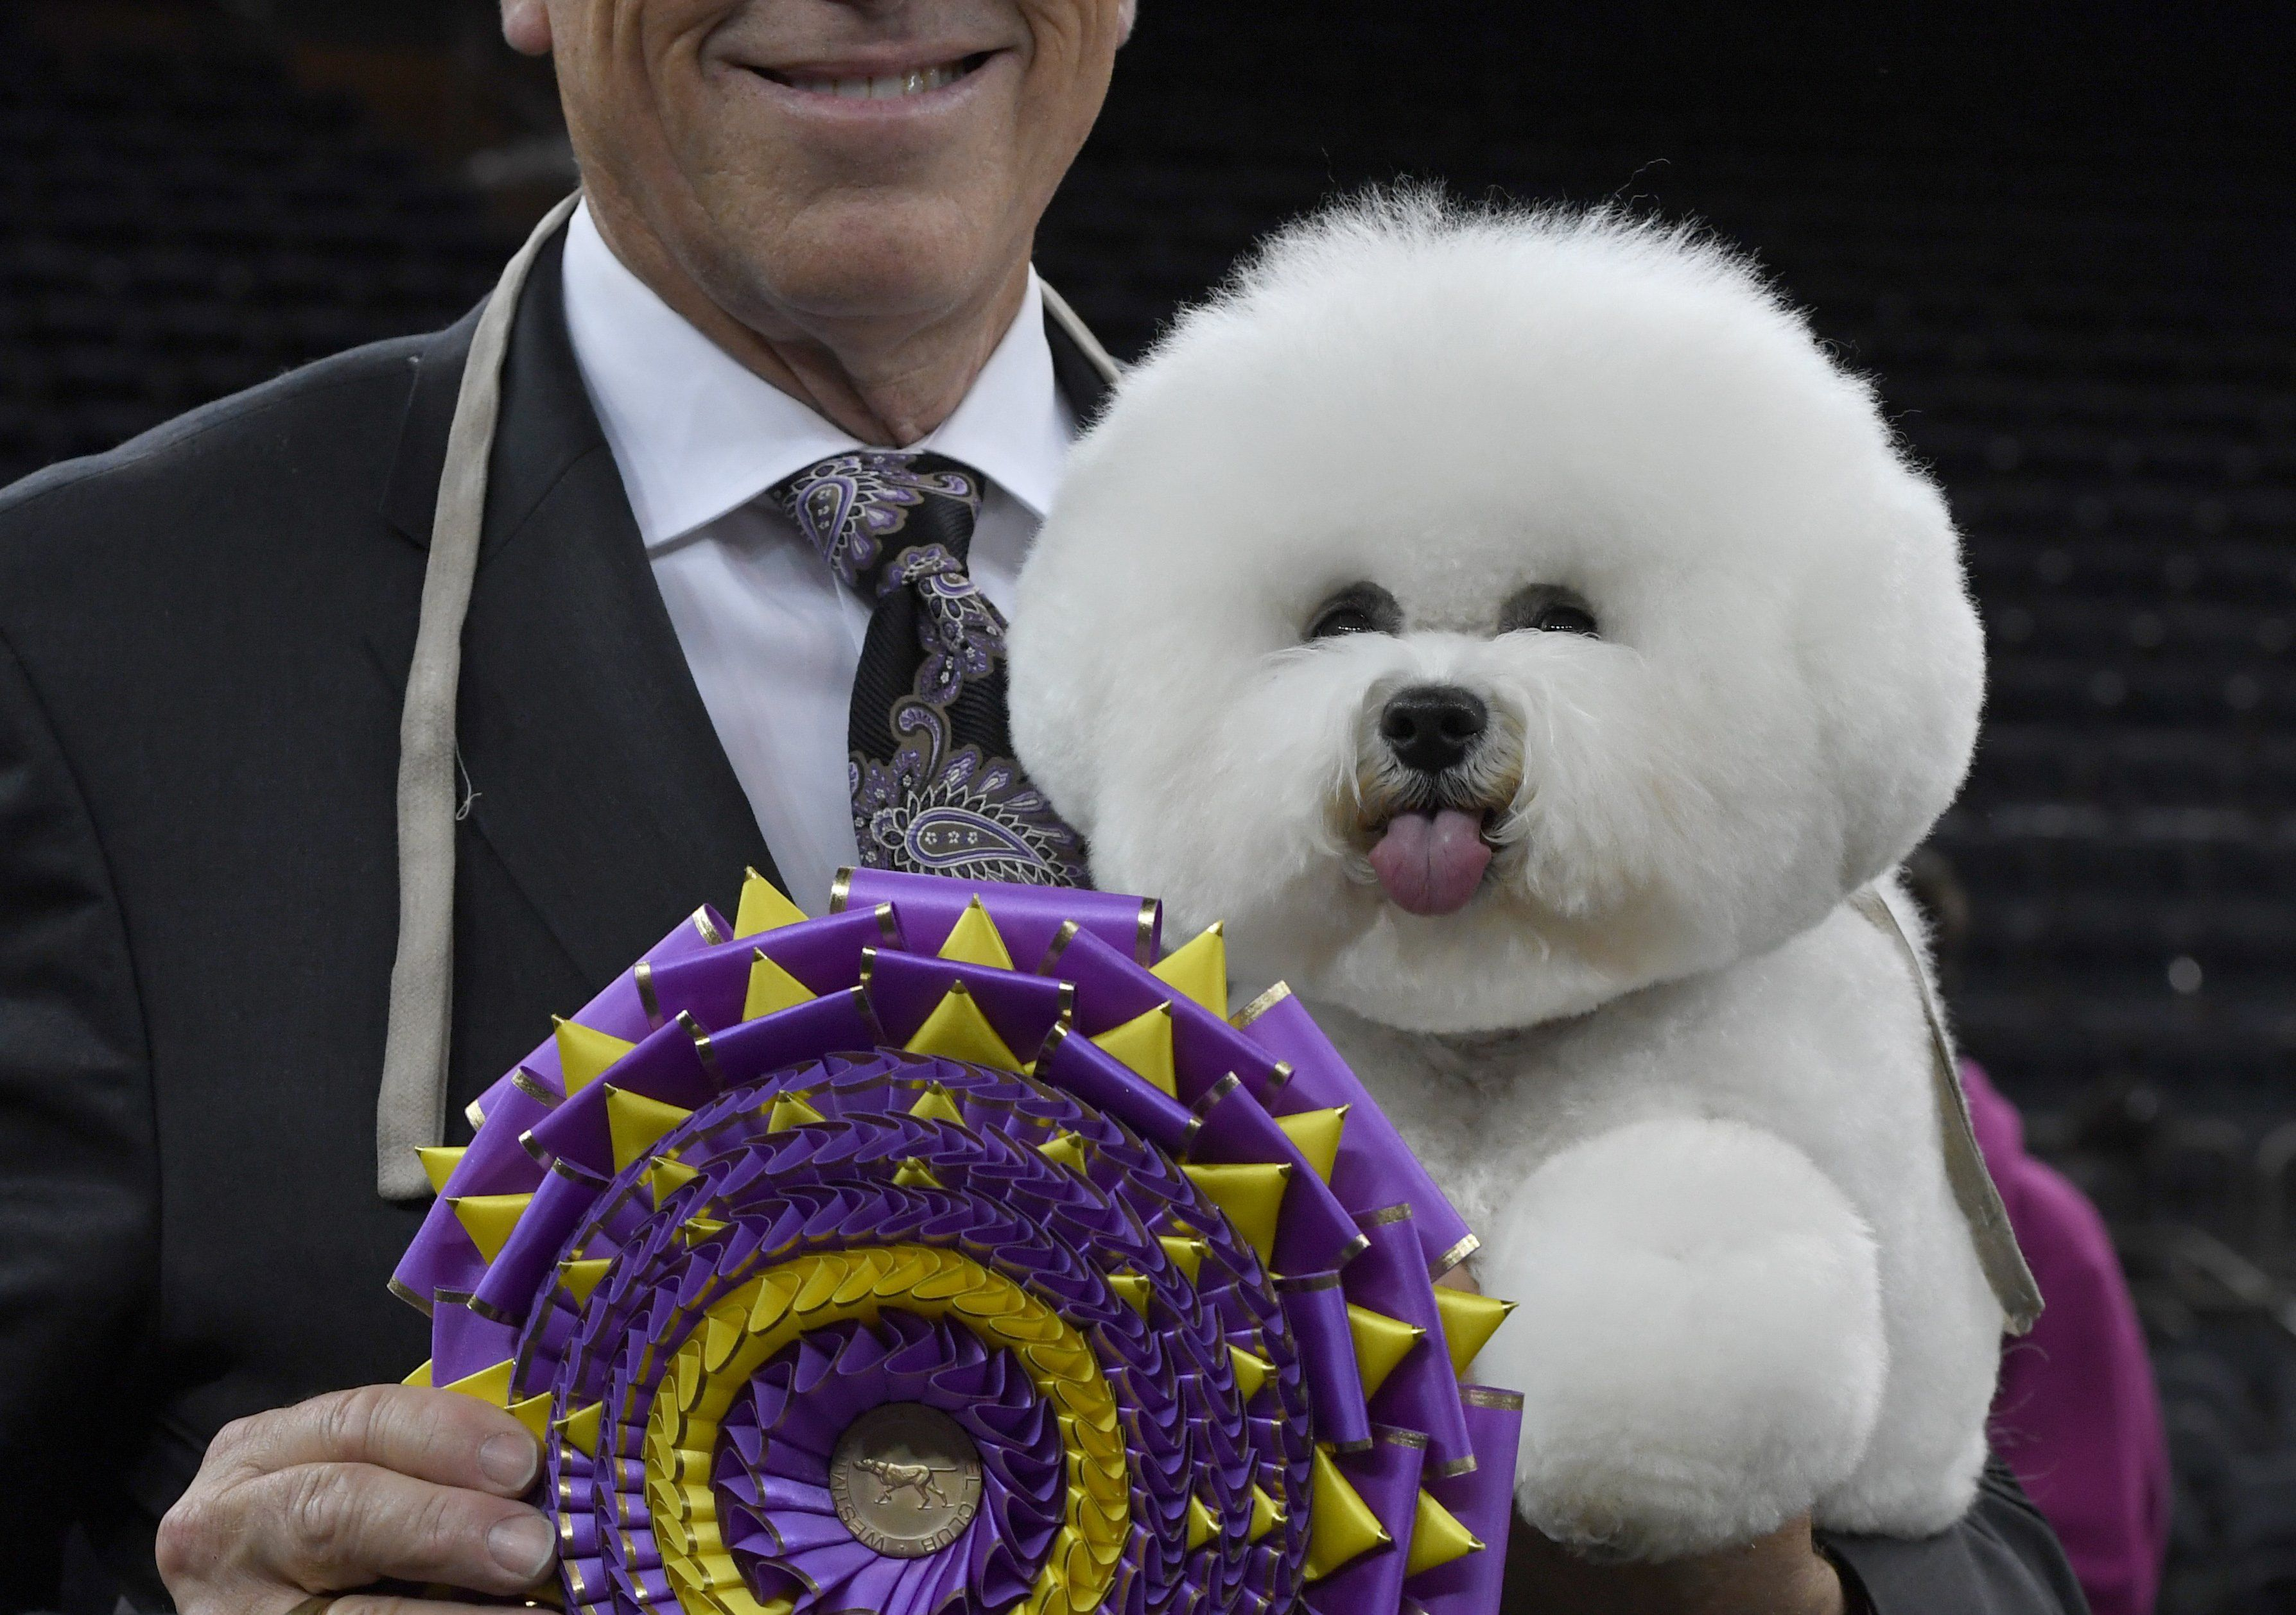 Bichon Frise wins the top prize at Westminster dog show